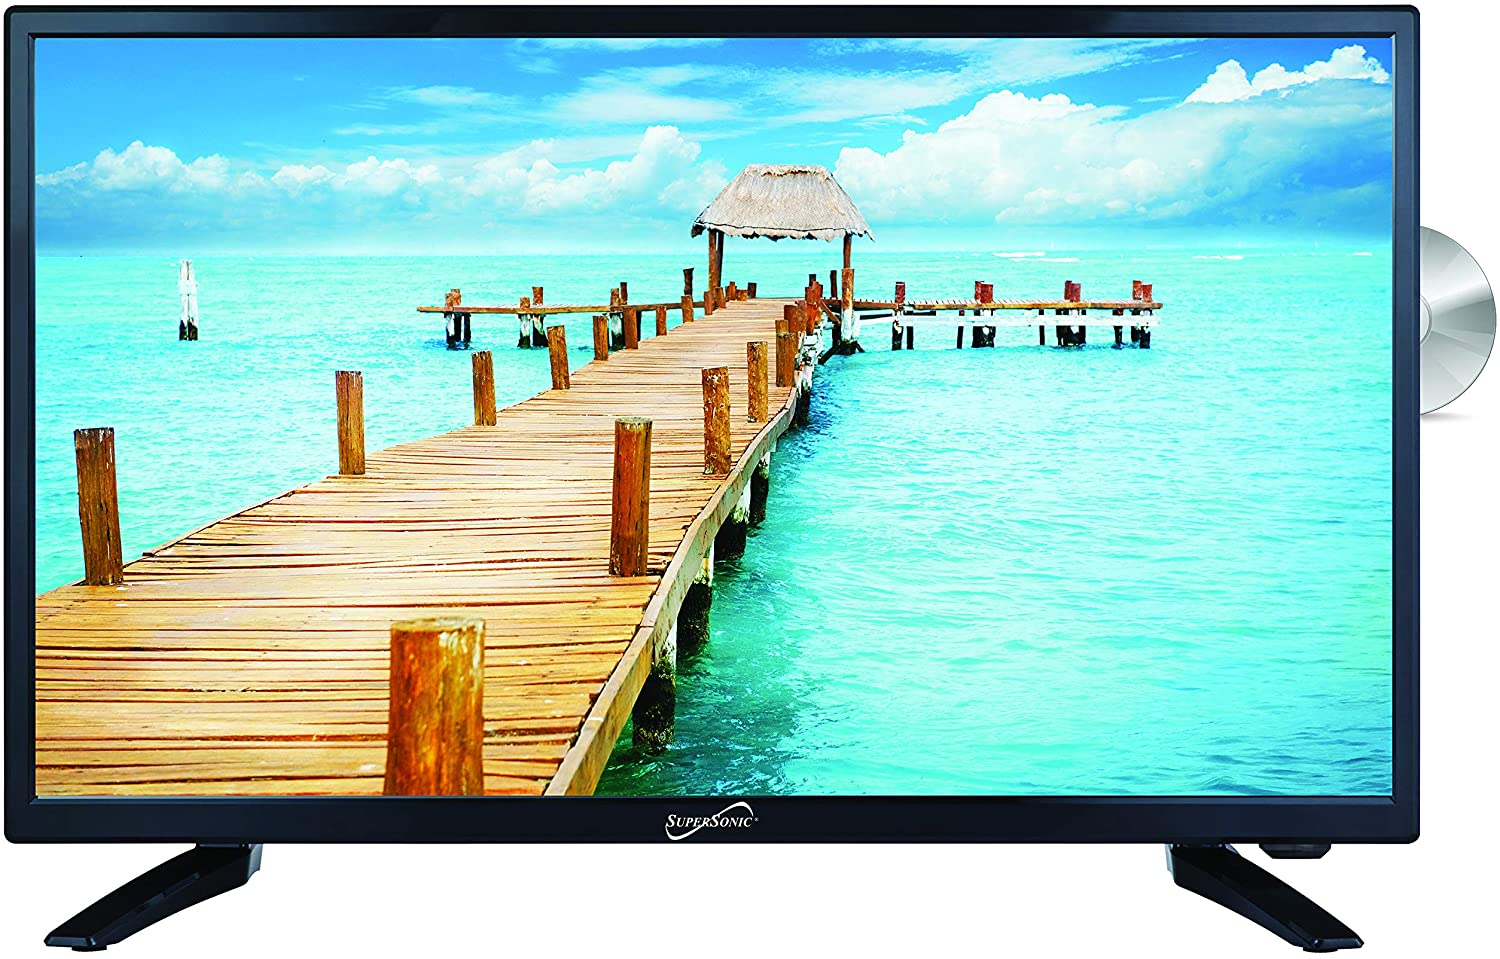 SuperSonic SC-2412 LED Widescreen HDTV & Monitor 24